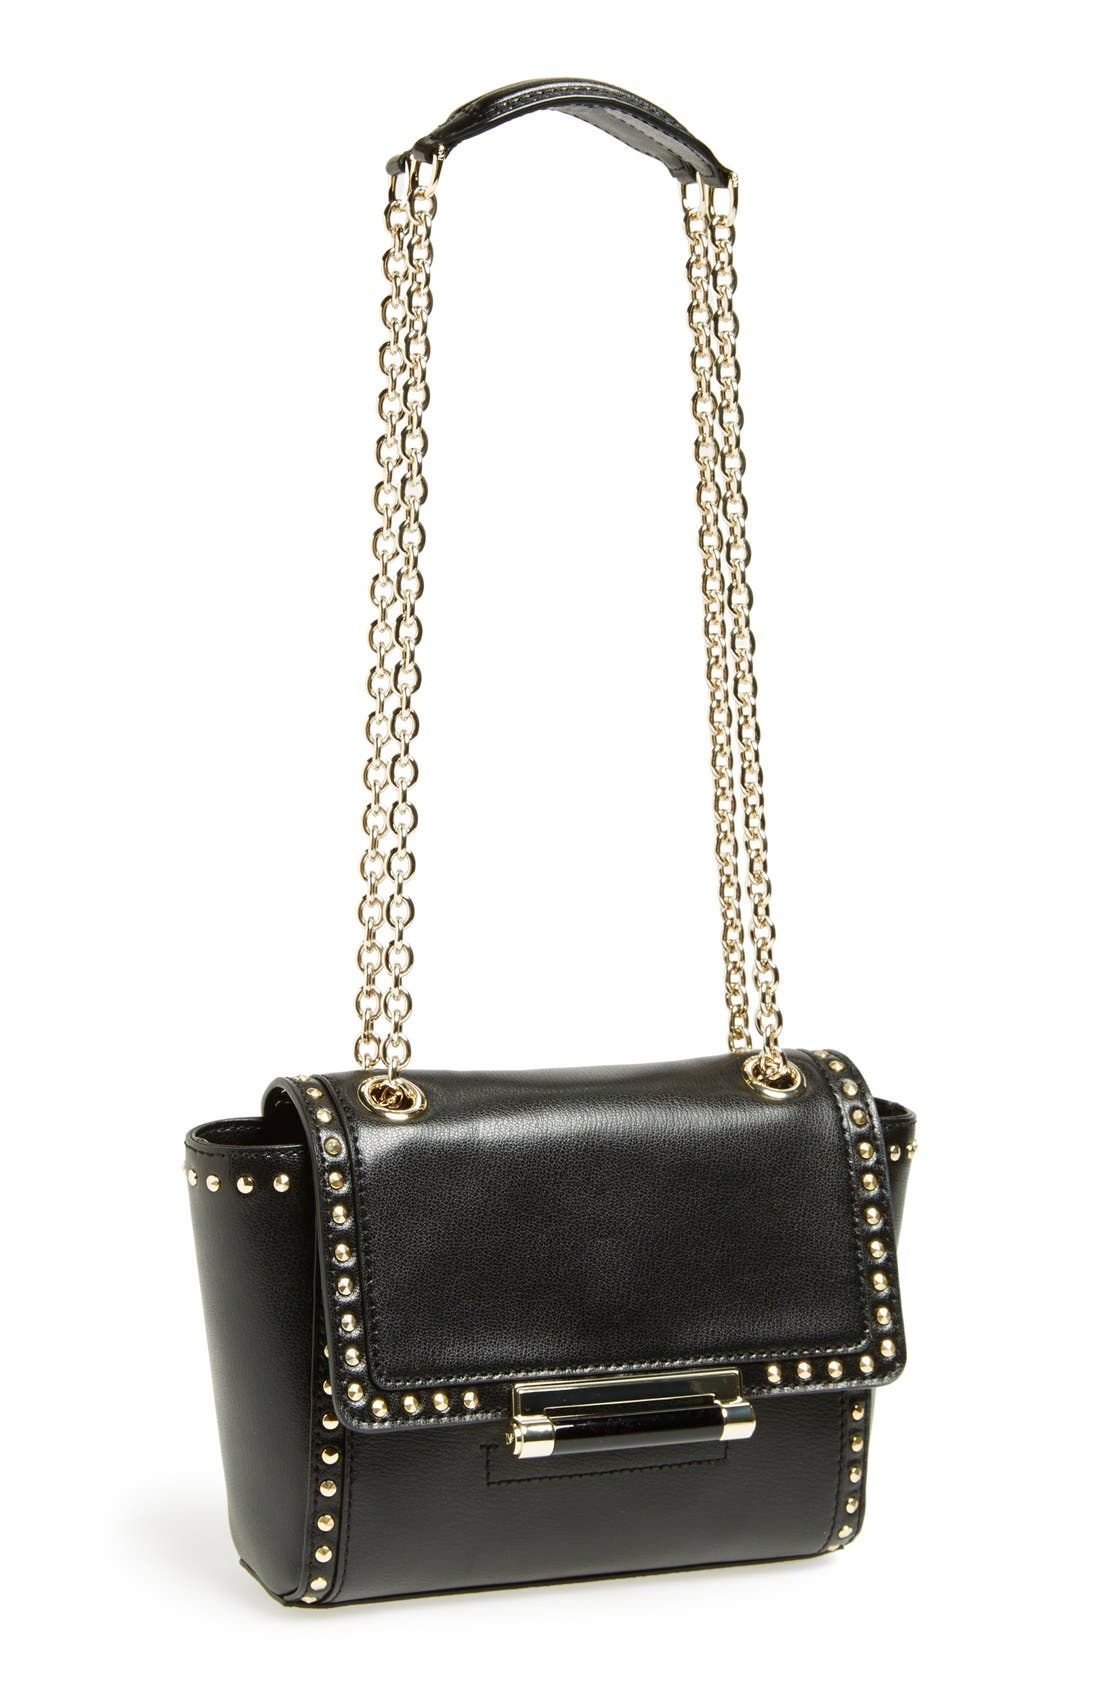 Main Image - Diane Von Furstenberg '440 - Mini' Stud Leather Crossbody Bag